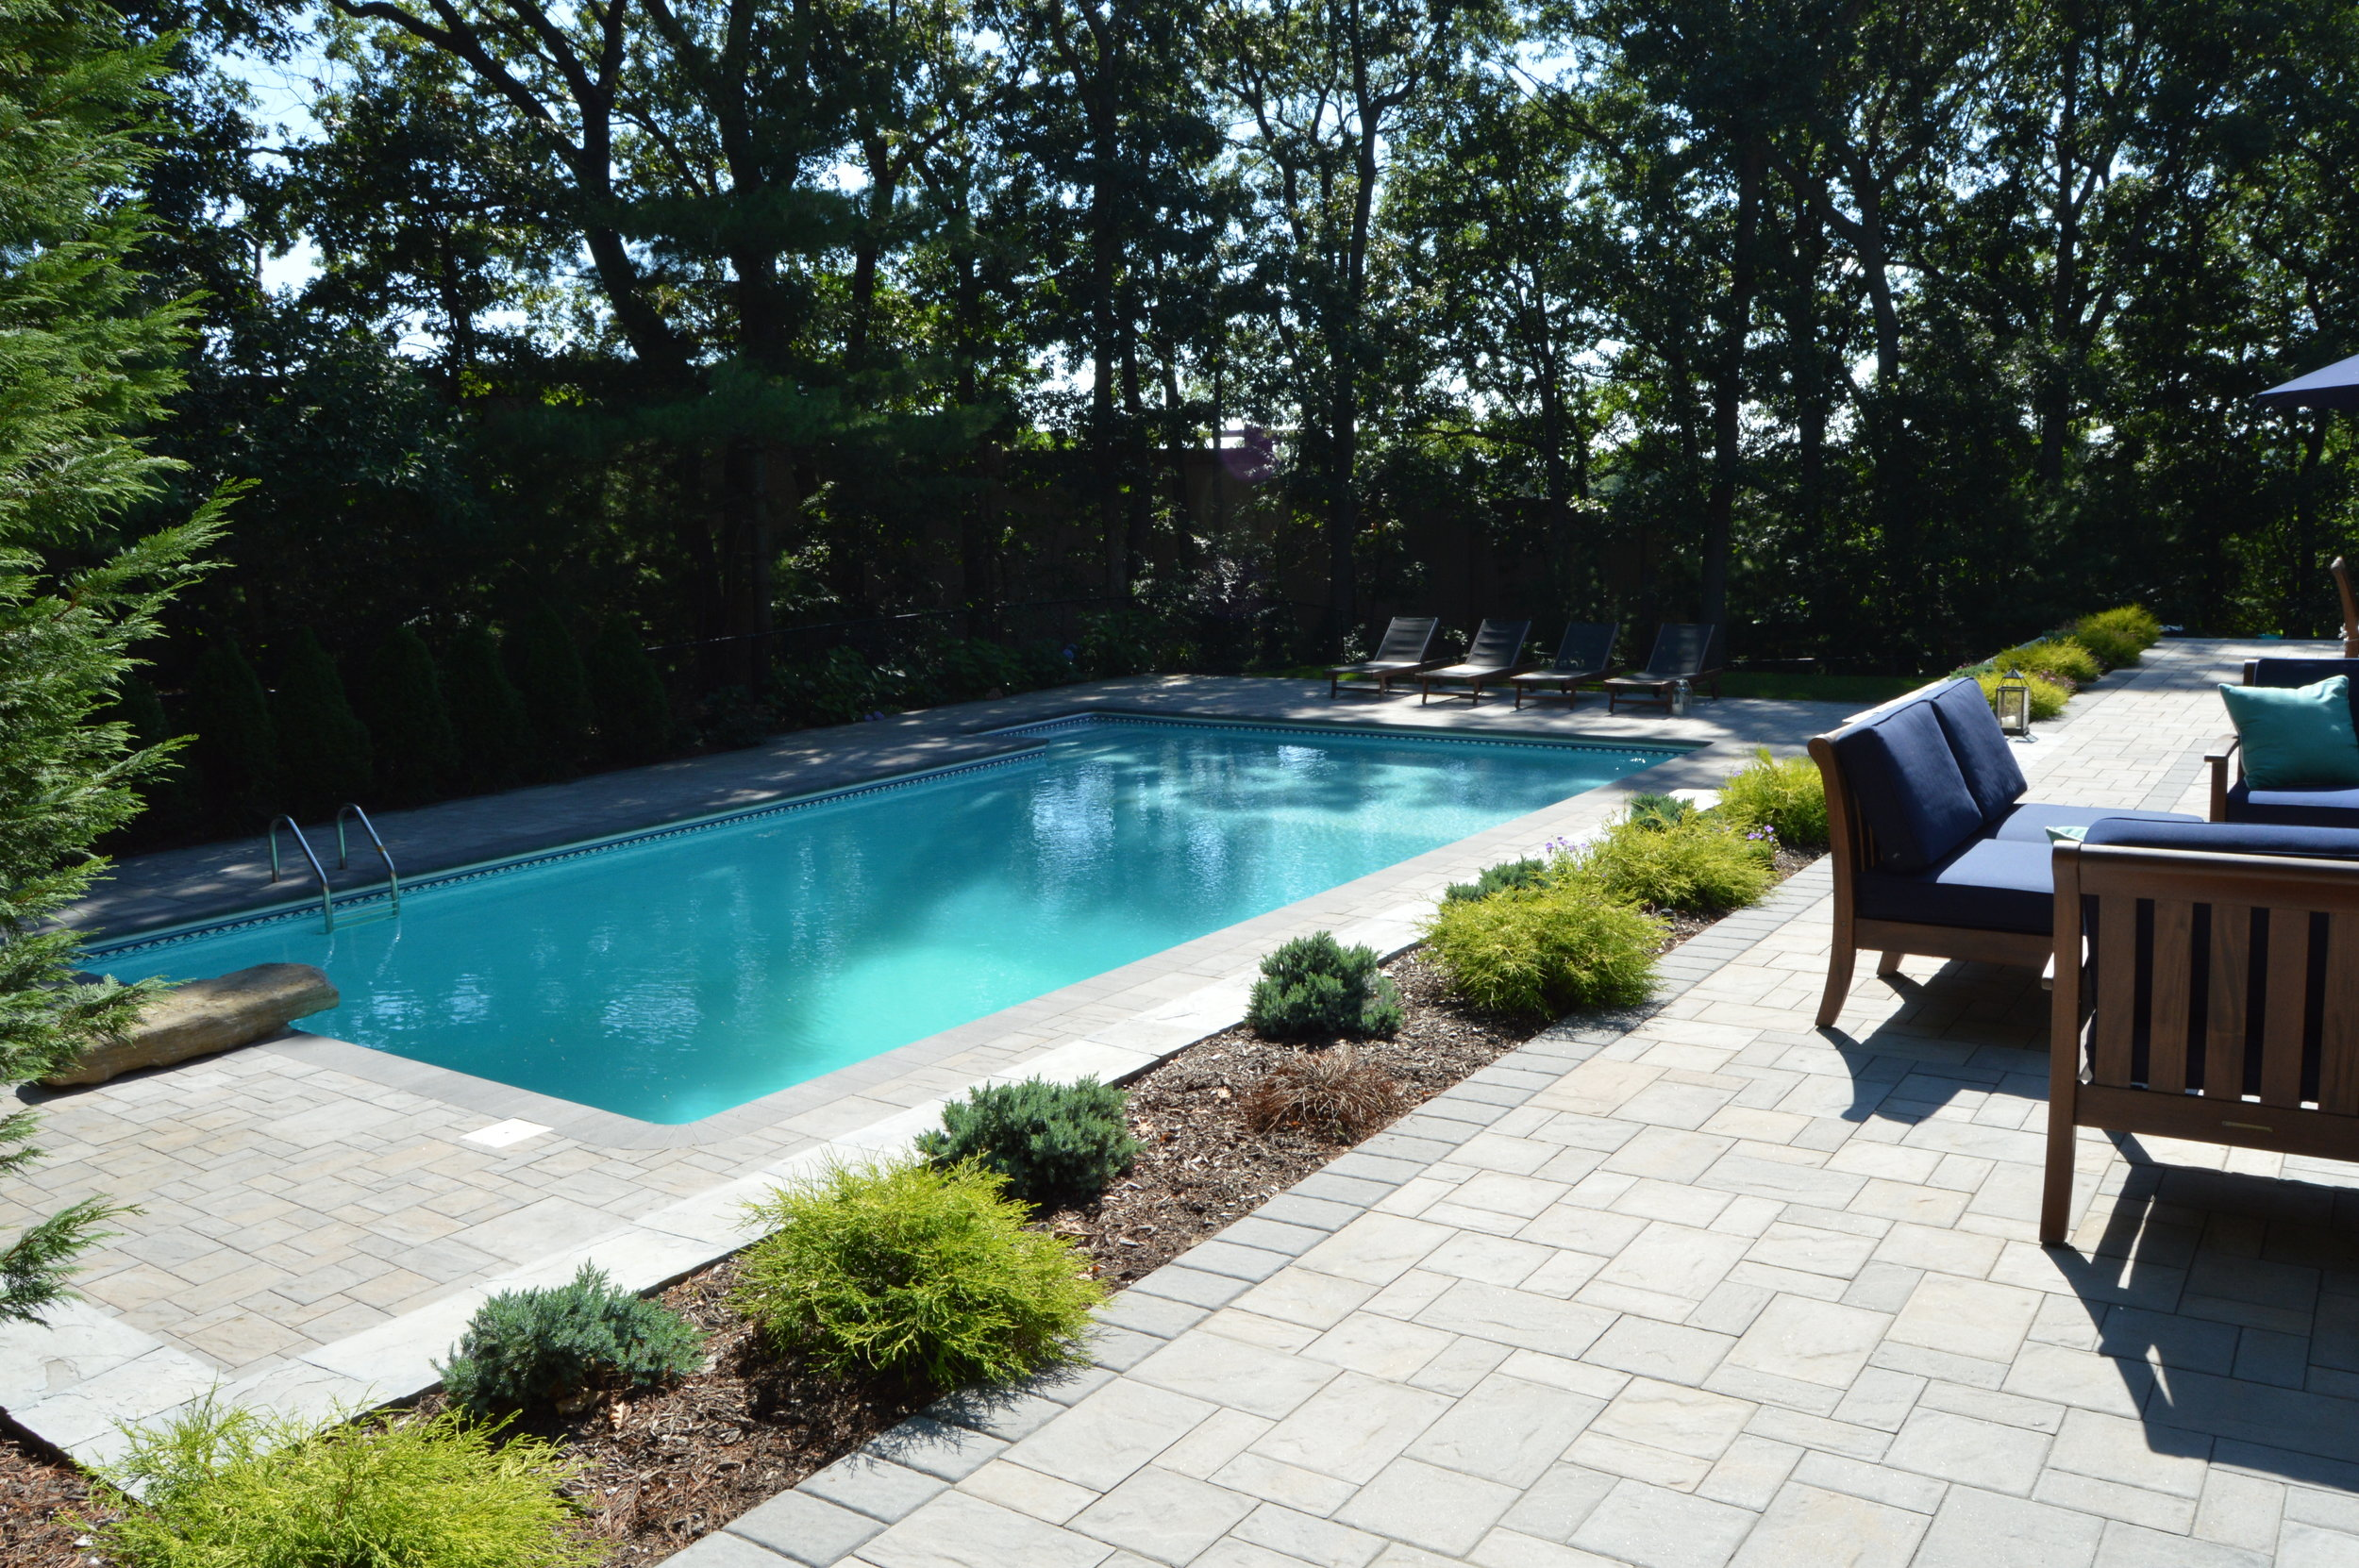 Backyard designs with pools in Huntington, NY